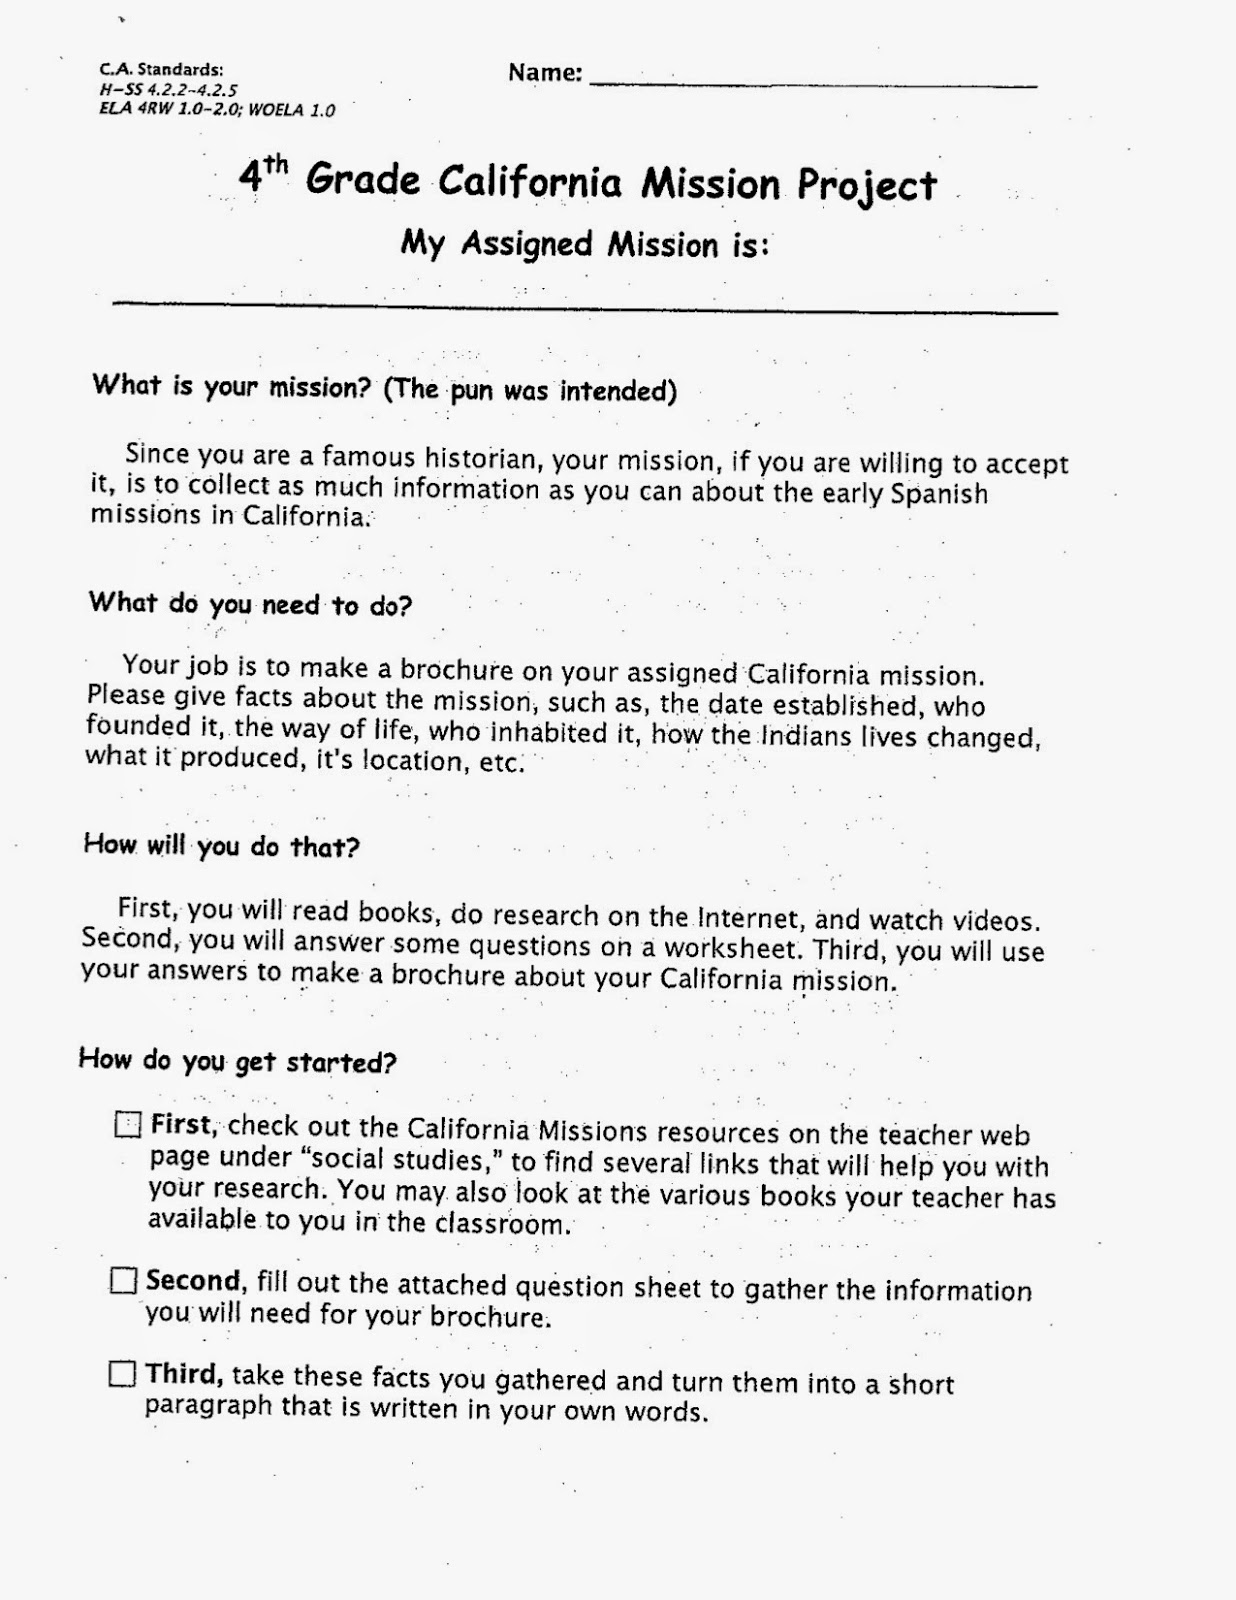 Welcome To Our Class California Mission Assignment